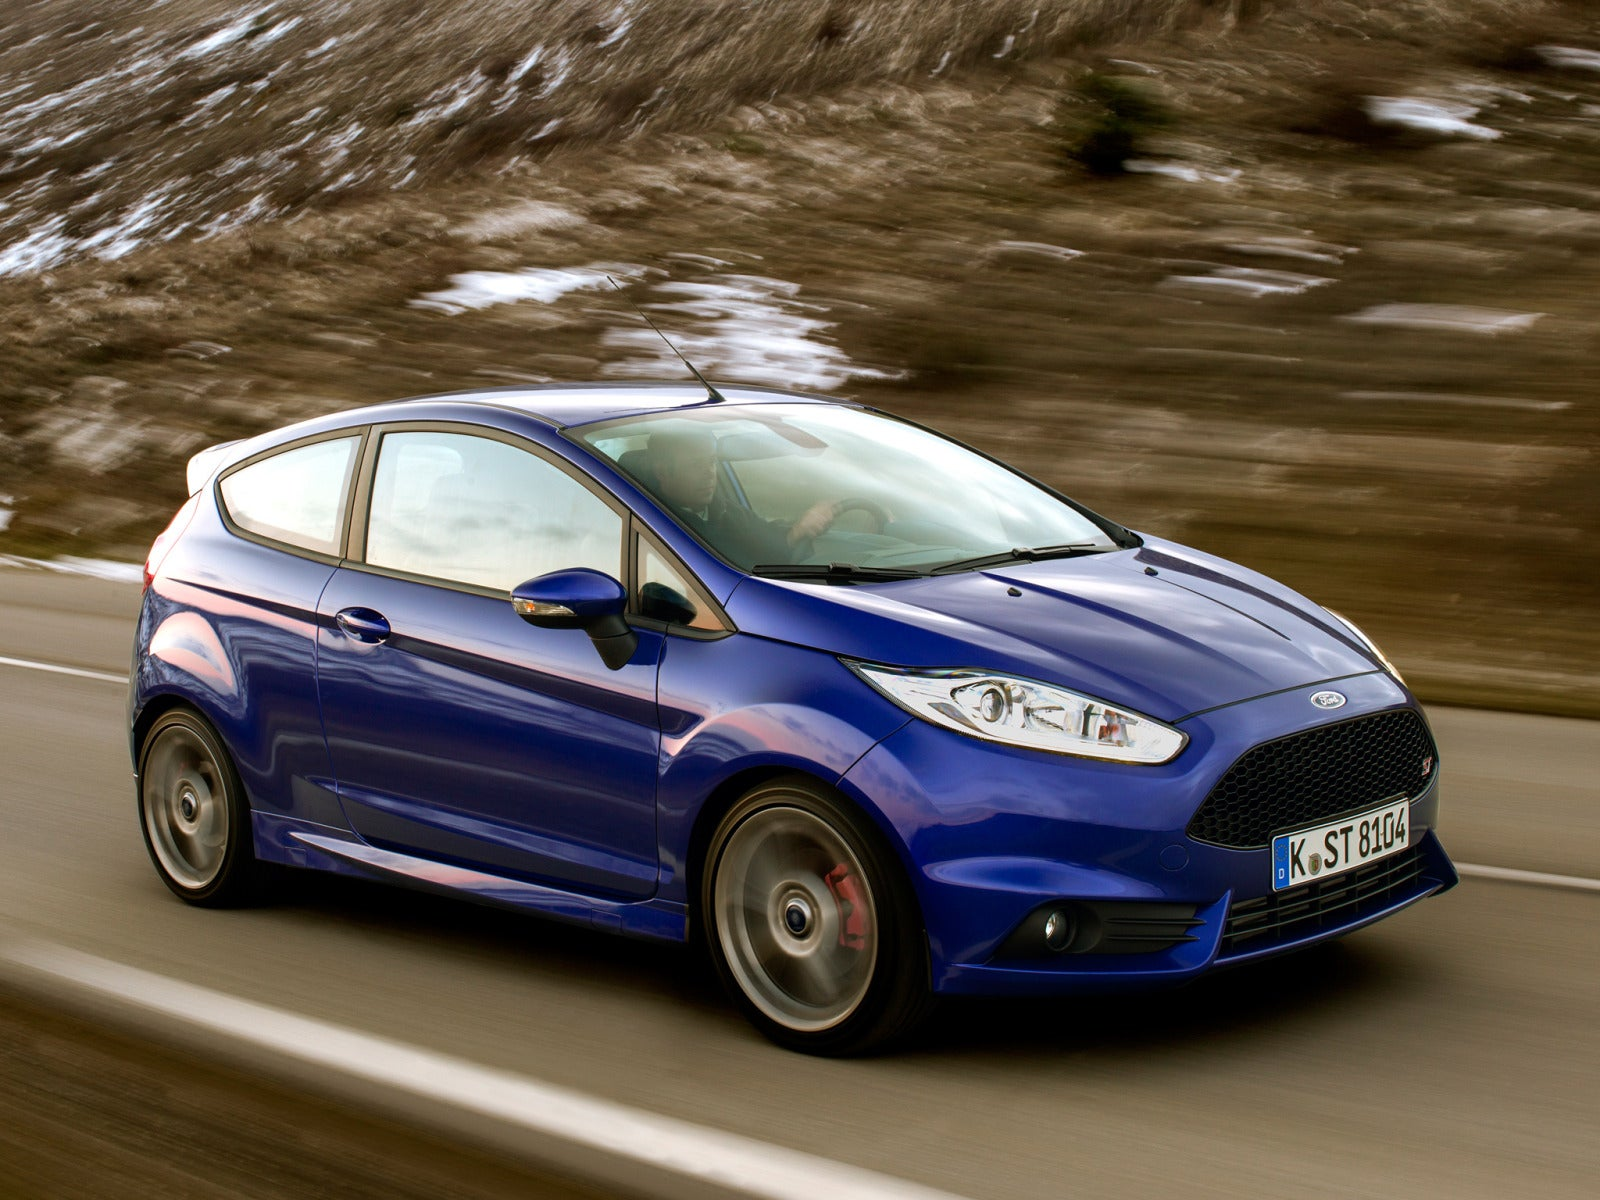 Sizzling 250bhp ford fiesta rs on the horizon ford inside news community